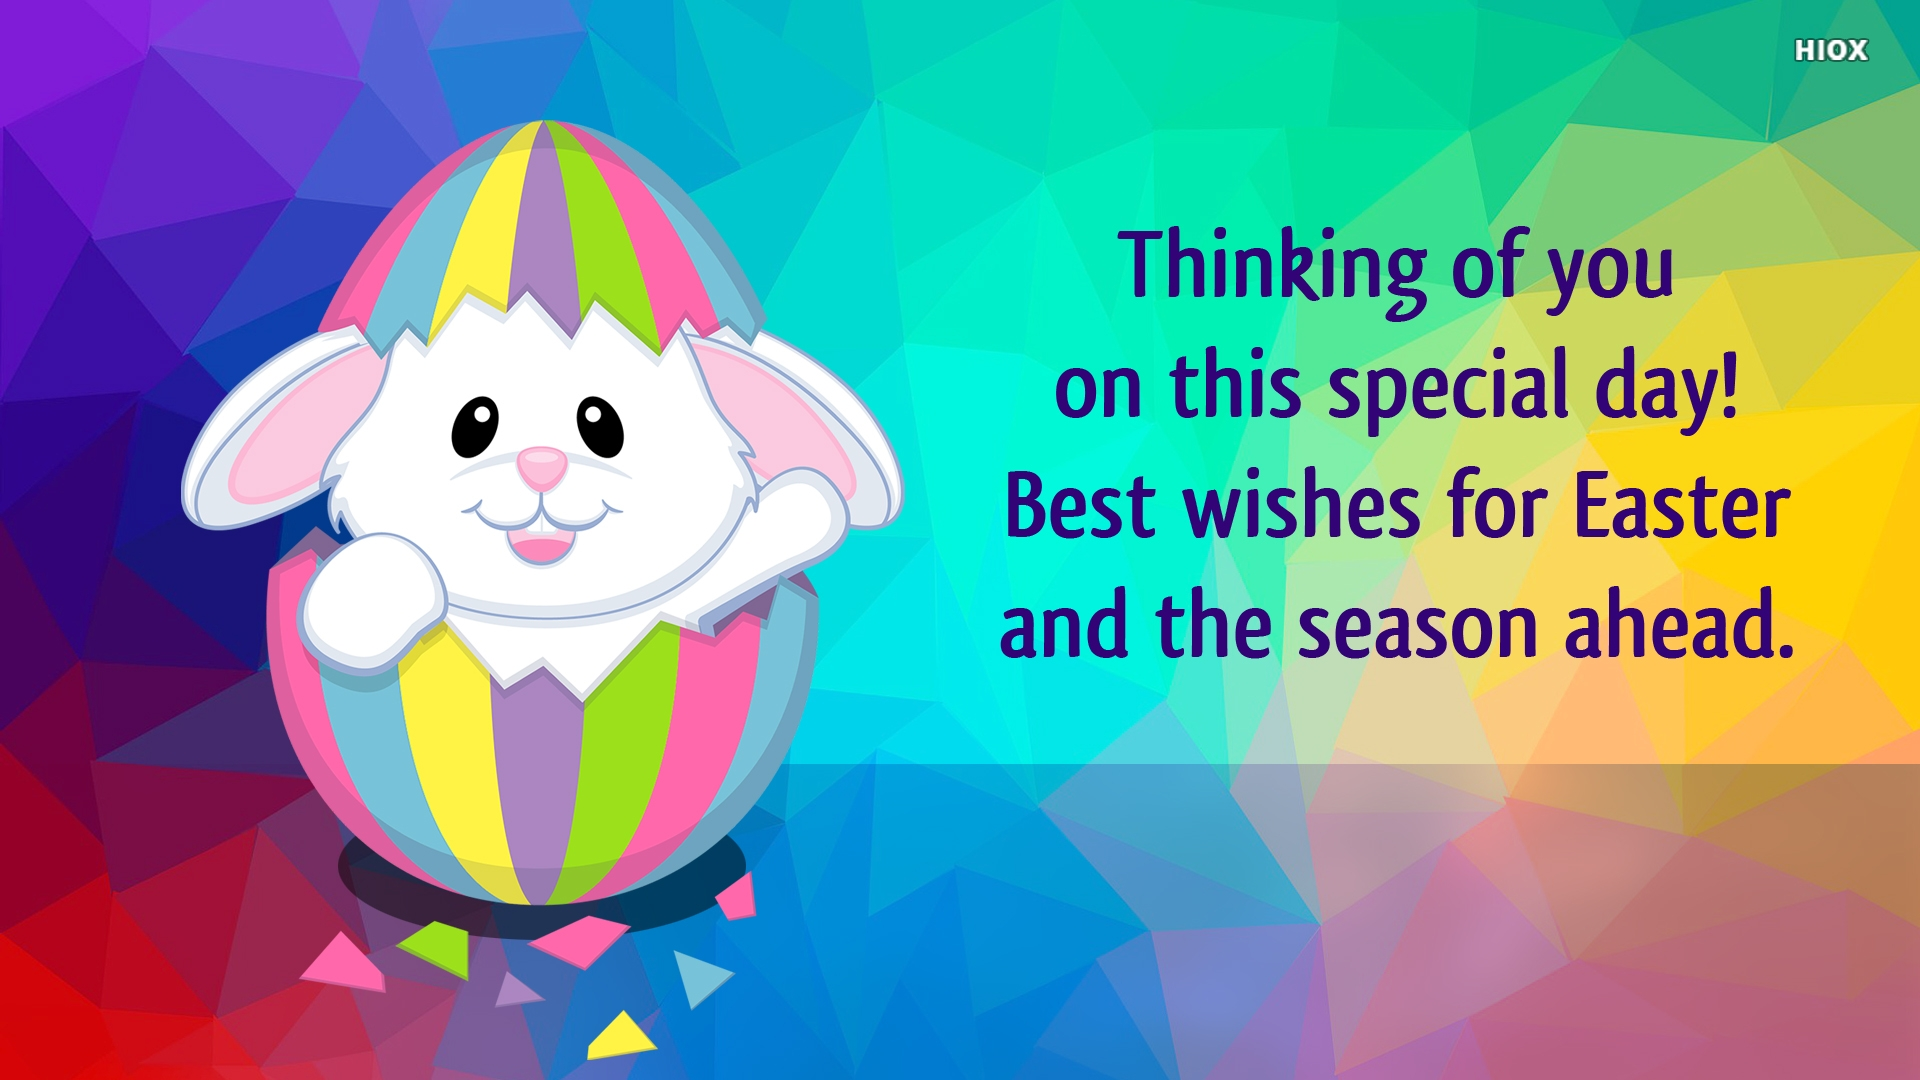 Thinking Of You On This Special Day! Best Wishes For Easter and The Season Ahead.